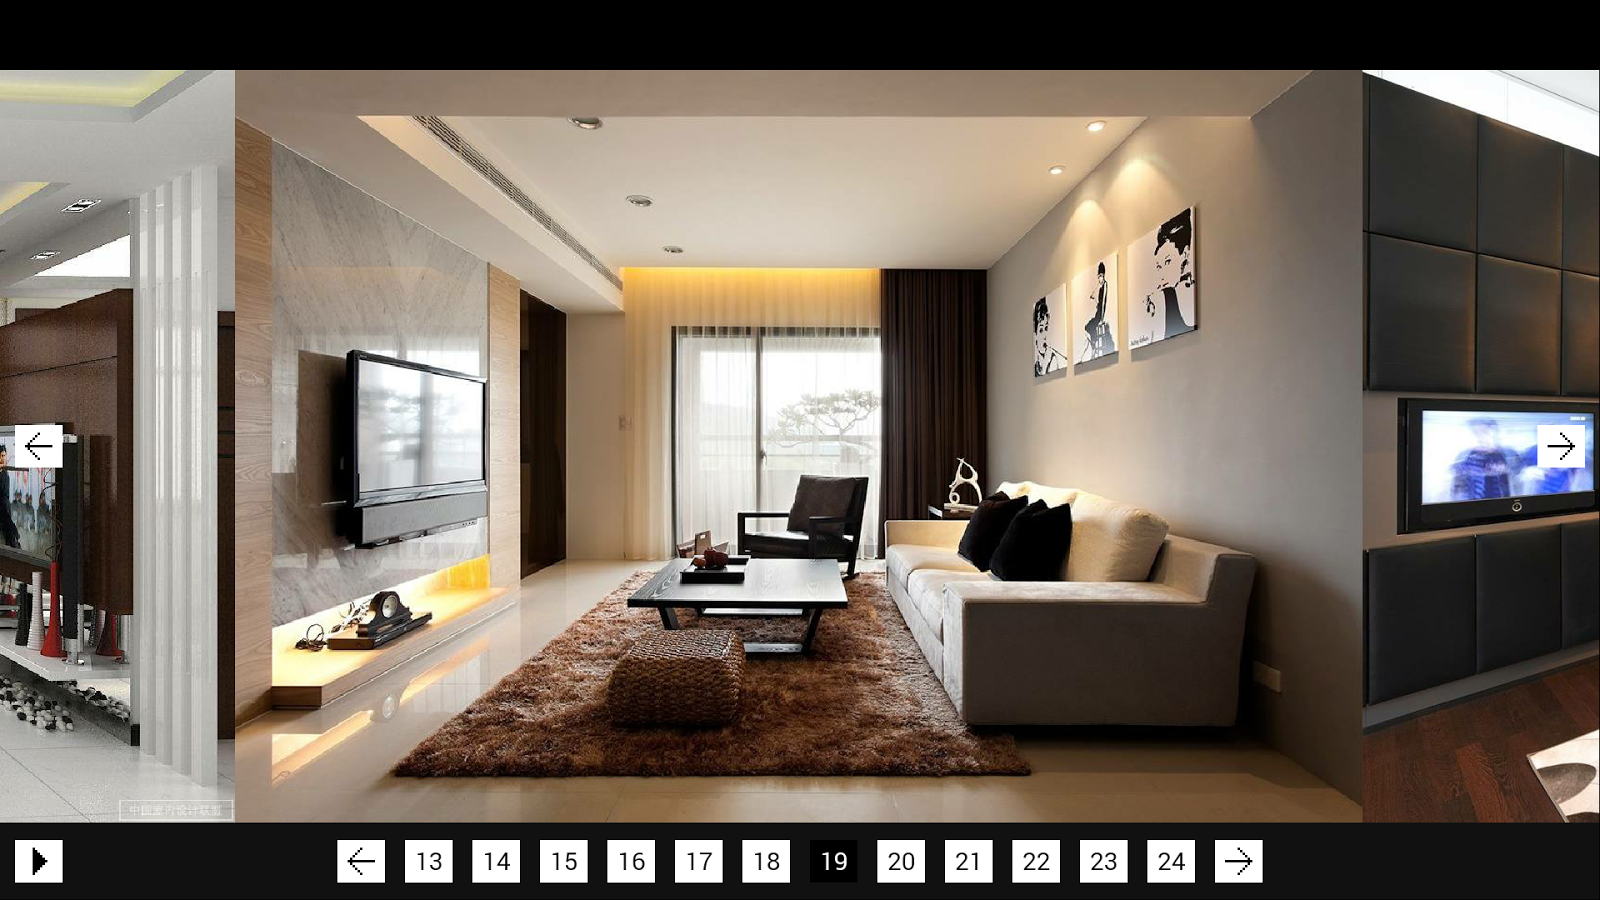 Home interior design android apps on google play - Interior design for home ...